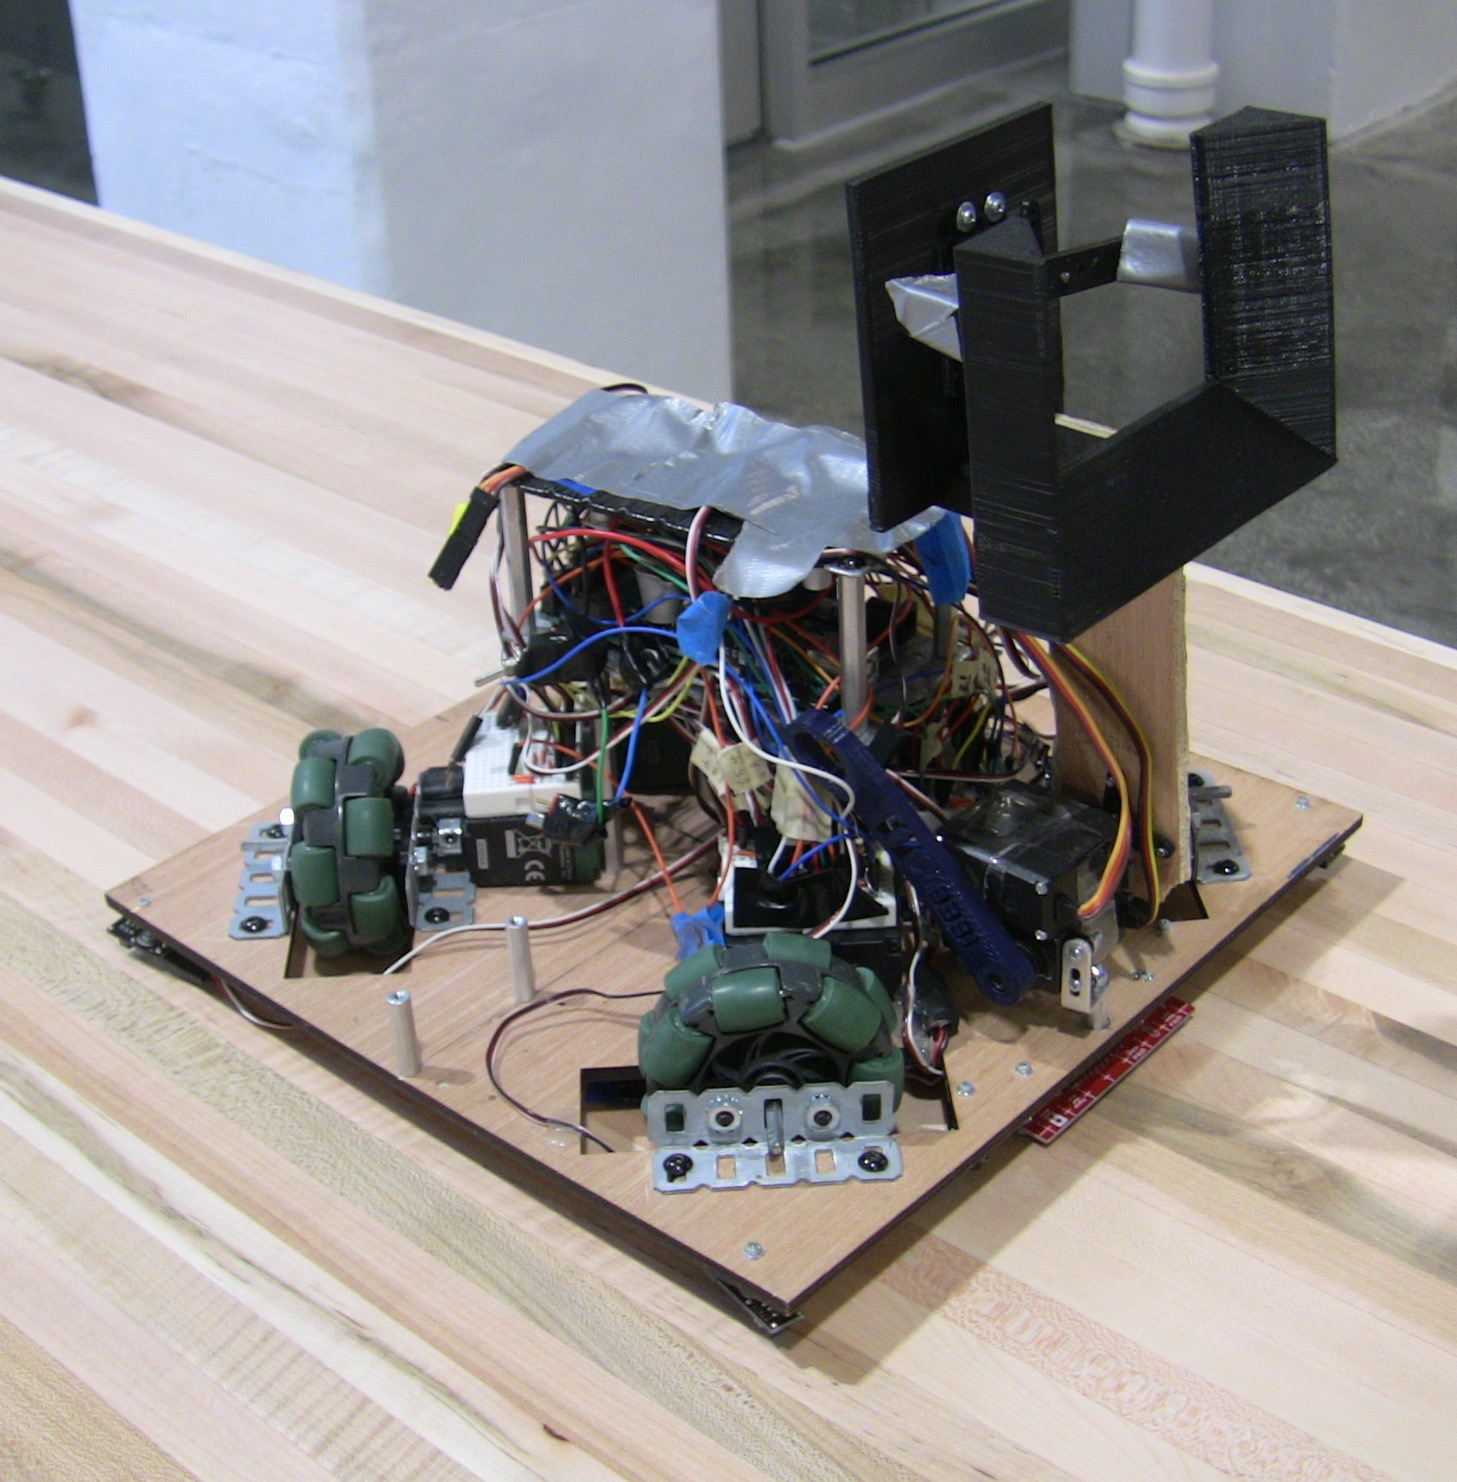 Duke IEEE's 2015 SoutheastCon robot, which placed 13th out of 50 teams. Some parts had been removed following the competition